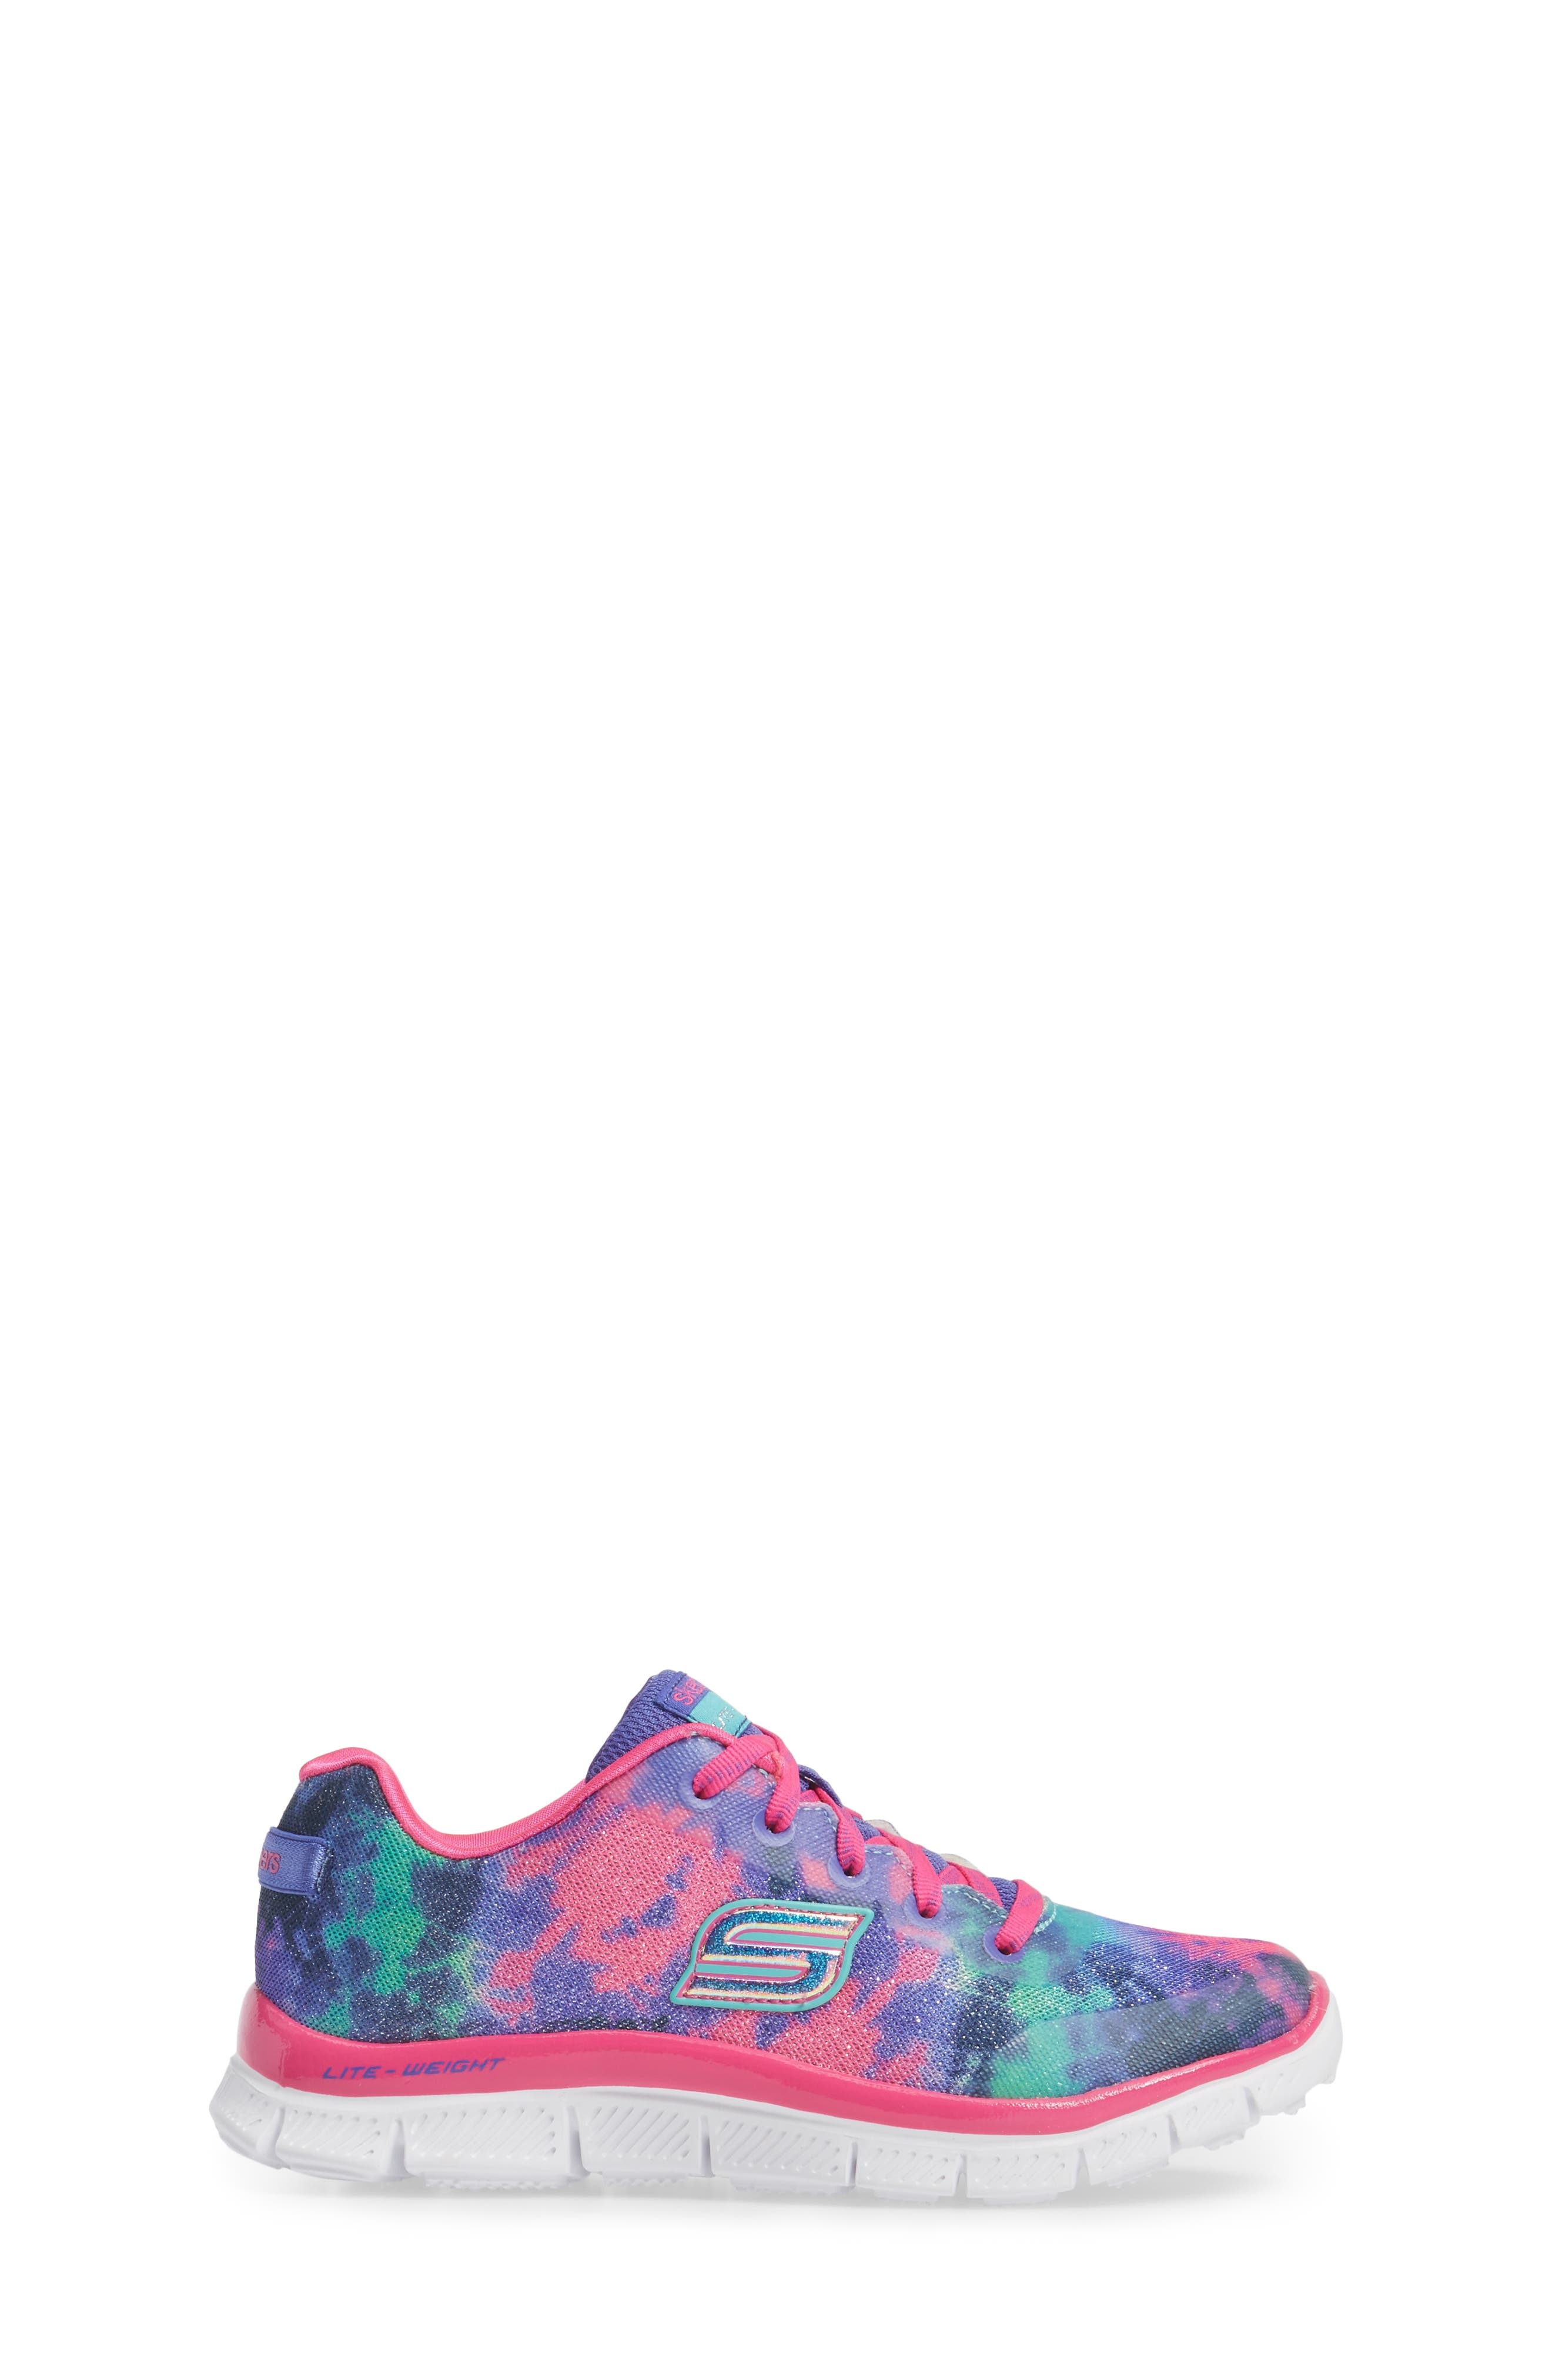 Skech Appeal Groove Thang Sneaker,                             Alternate thumbnail 3, color,                             Neon Pink/ Multi